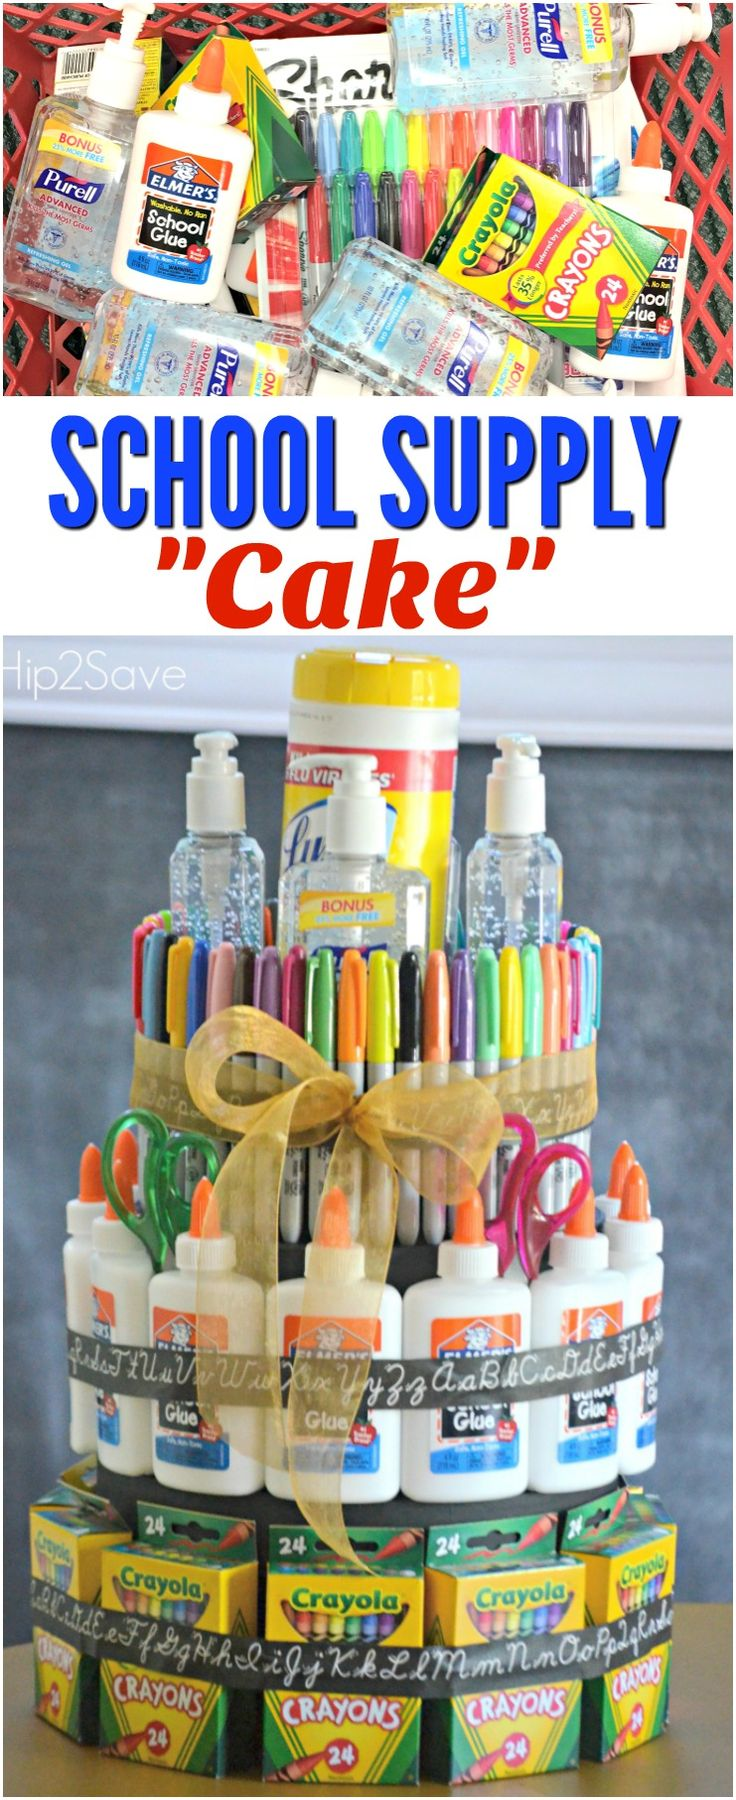 """School Supply """"Cake"""" (Back to School Gift IdeaLina D @ Fancy Frugal Life"""